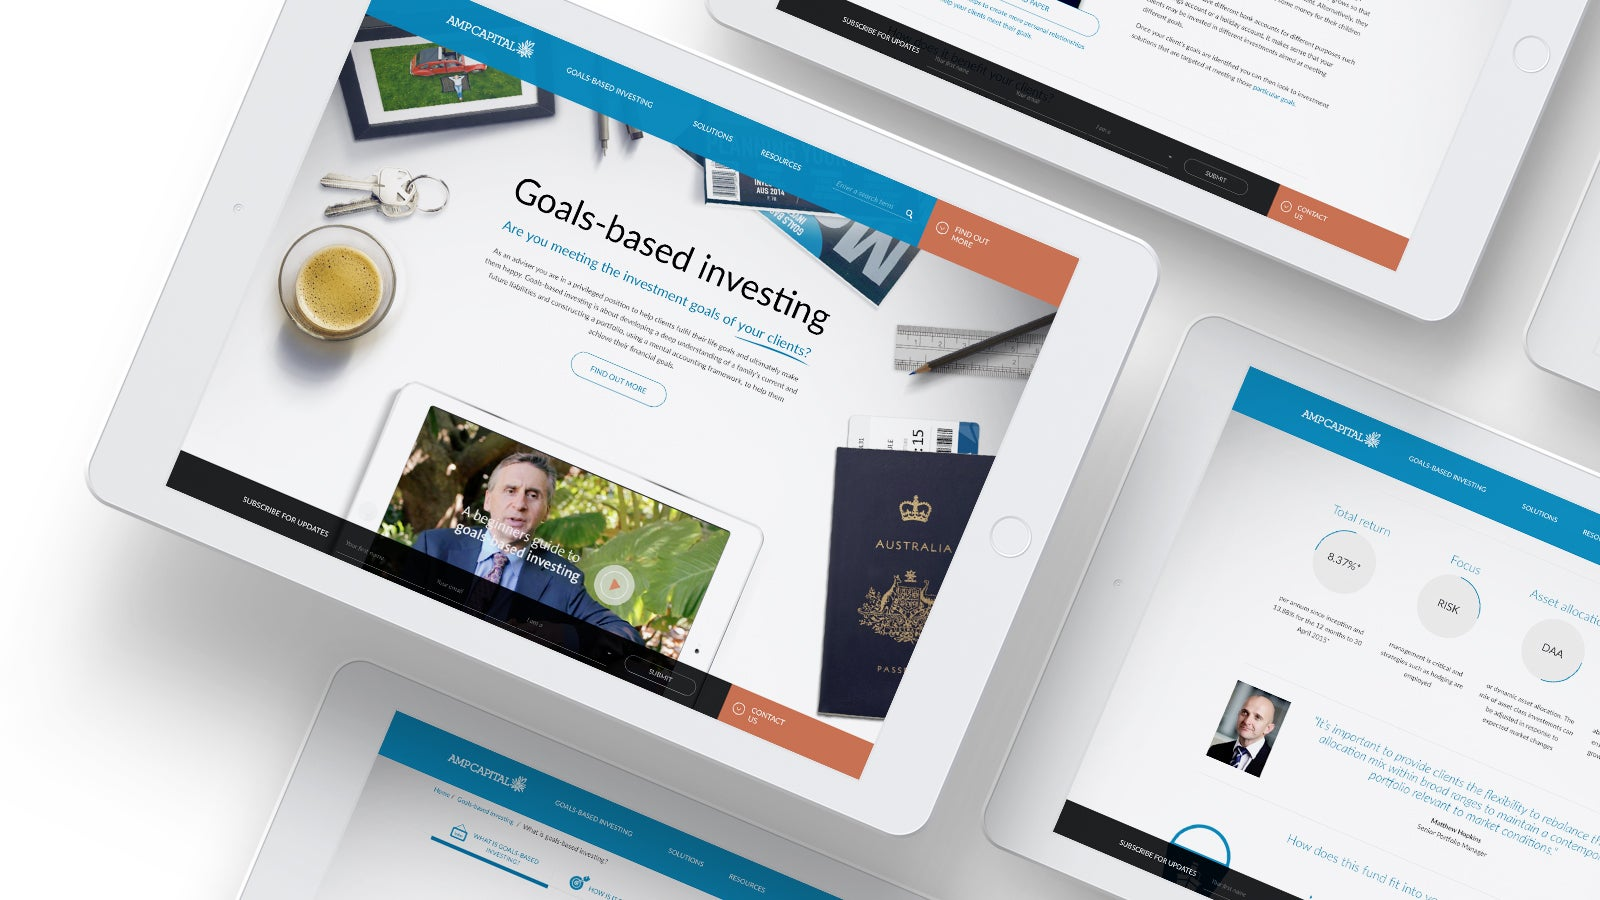 AMP   AMP Capital investing pages on tablet   Devotion